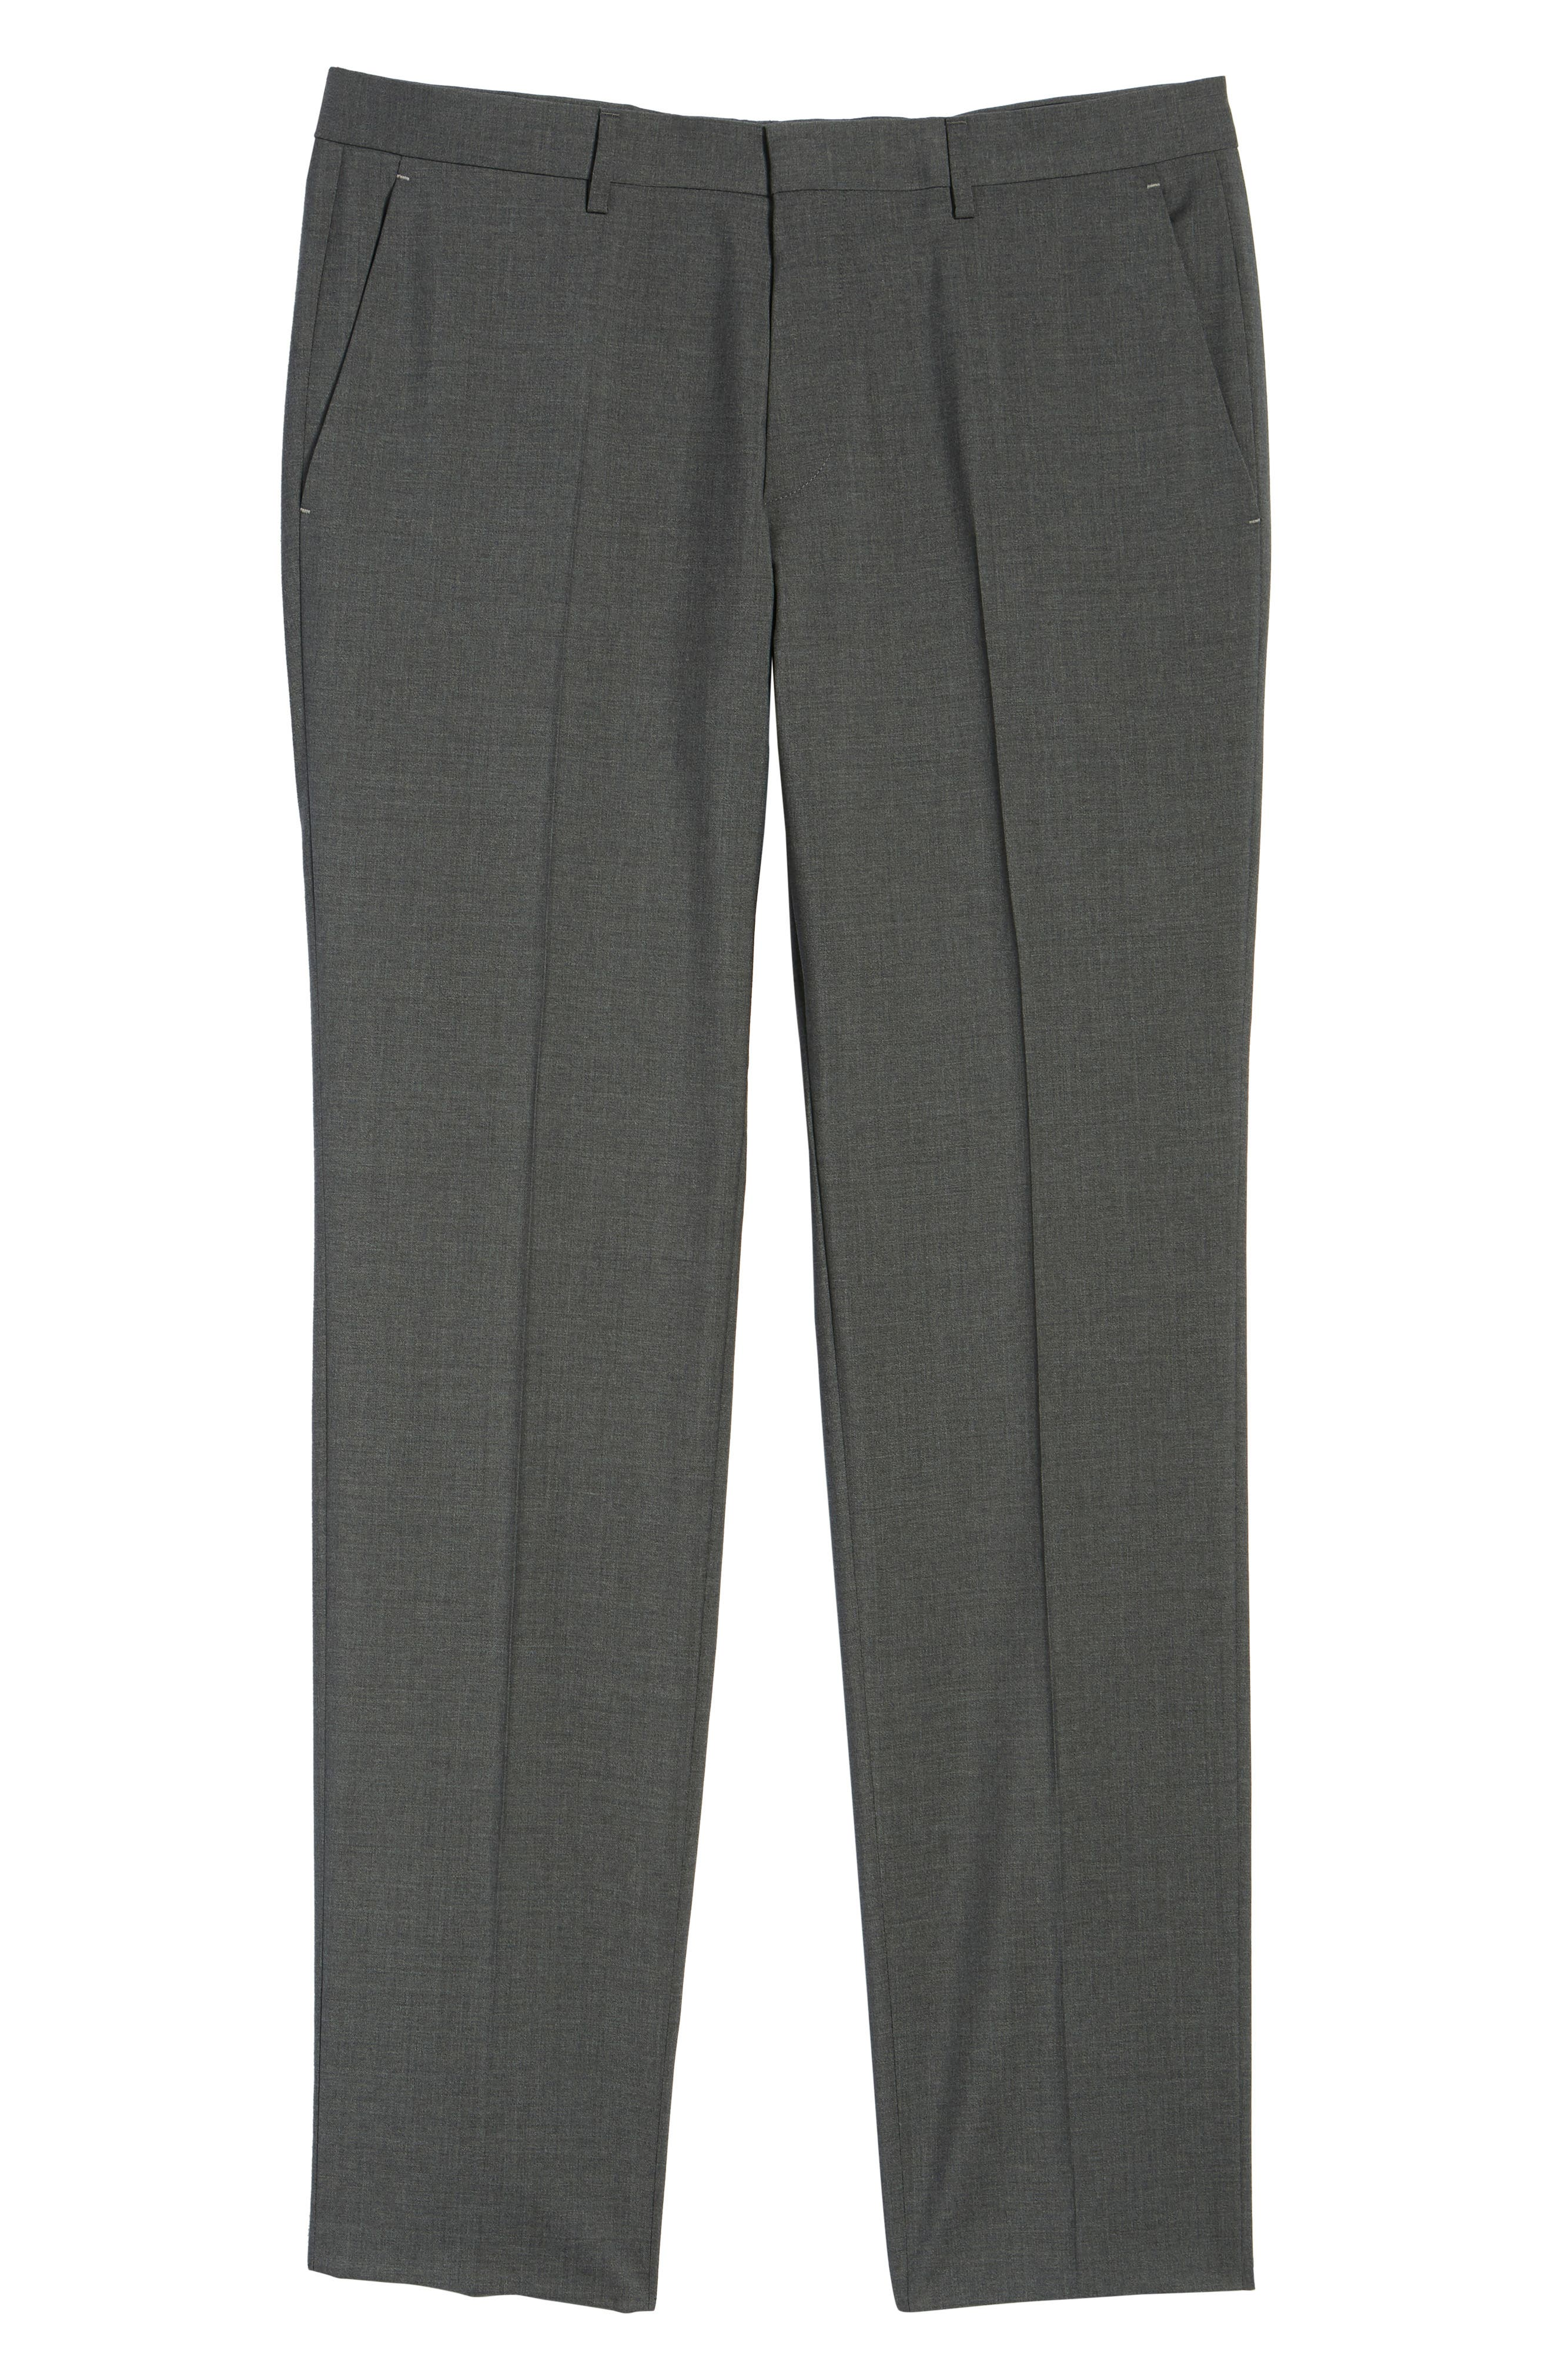 Genesis Flat Front Trim Fit Wool Trousers,                             Alternate thumbnail 6, color,                             Charcoal